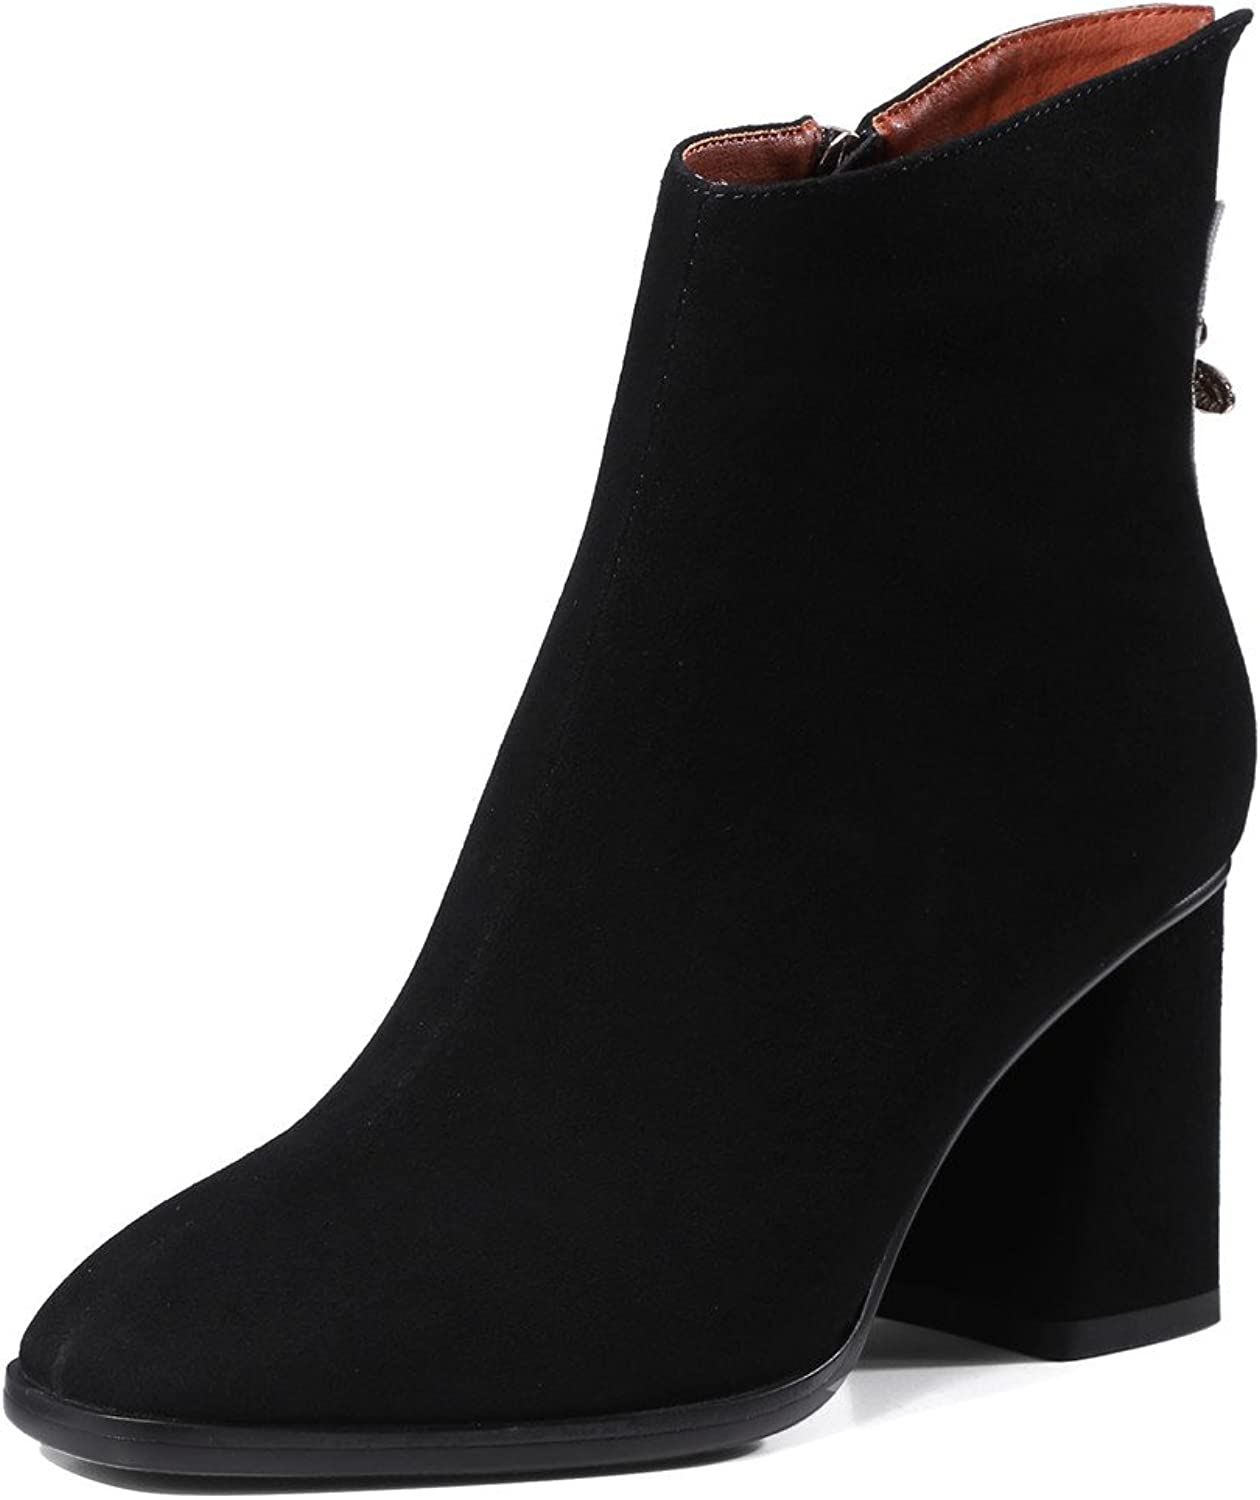 Nine Seven Suede Leather Women's Square Toe Chunky Heel Fashion Handmade Classic Ankle Boots